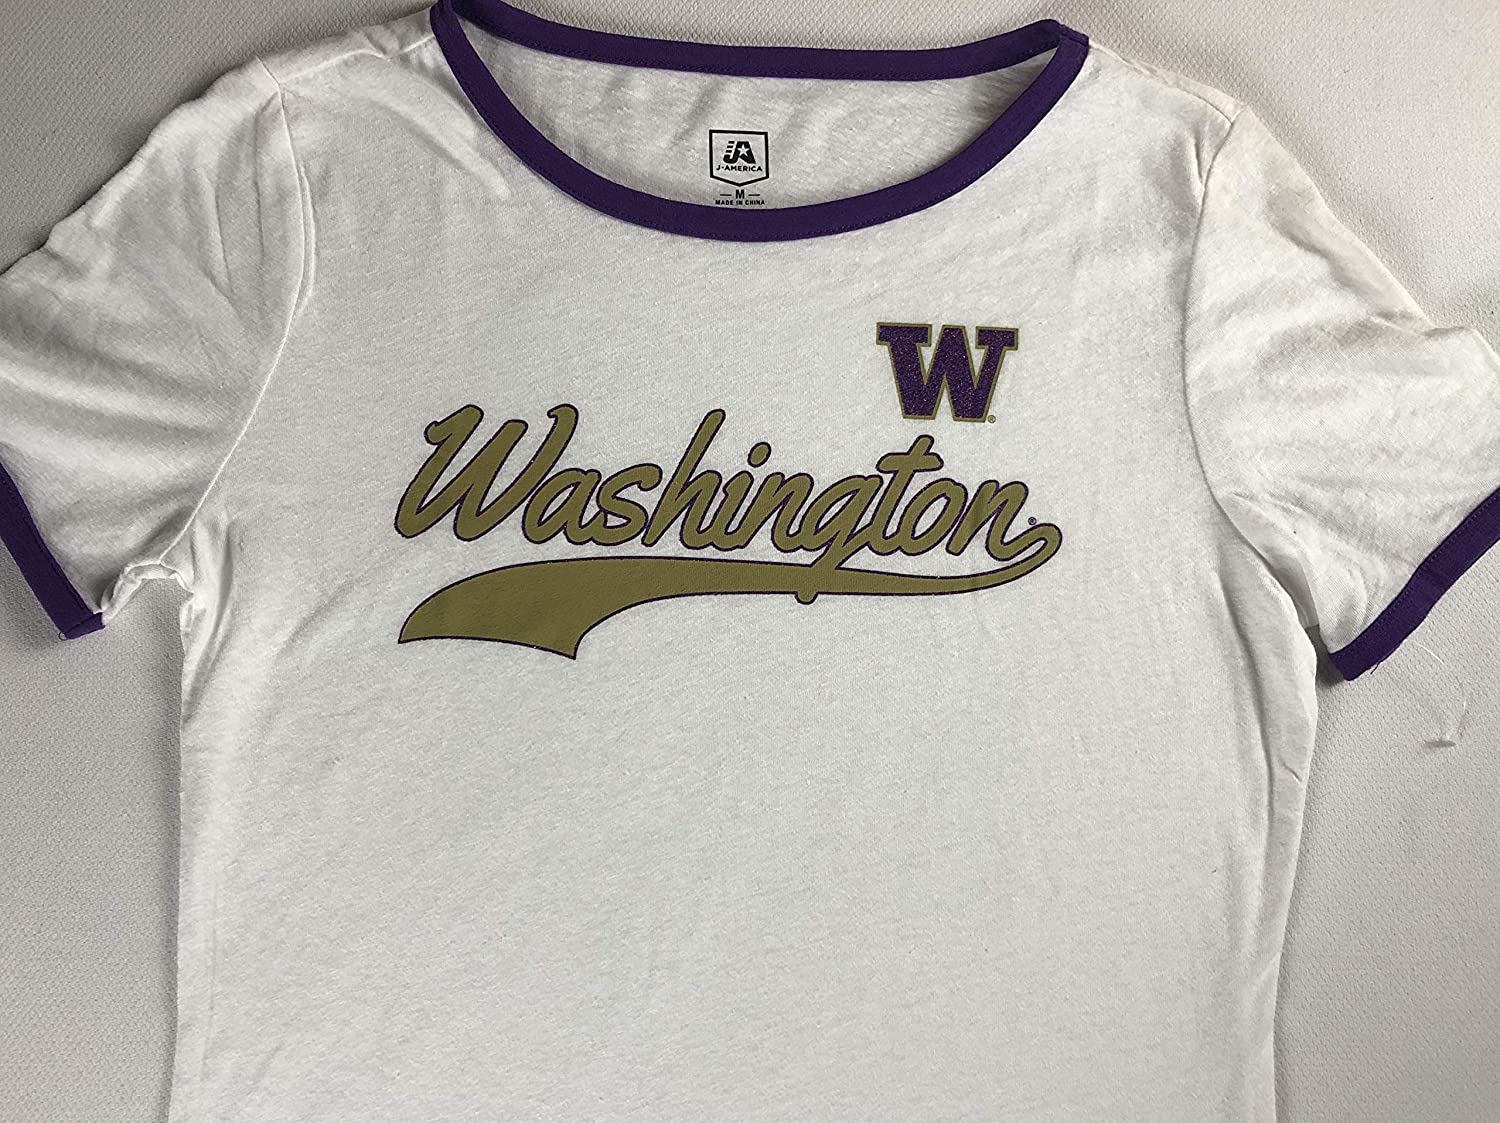 Huskies Washington T-Shirt Womens SZ S/M Student Alumni UW Sparkle Design Tee